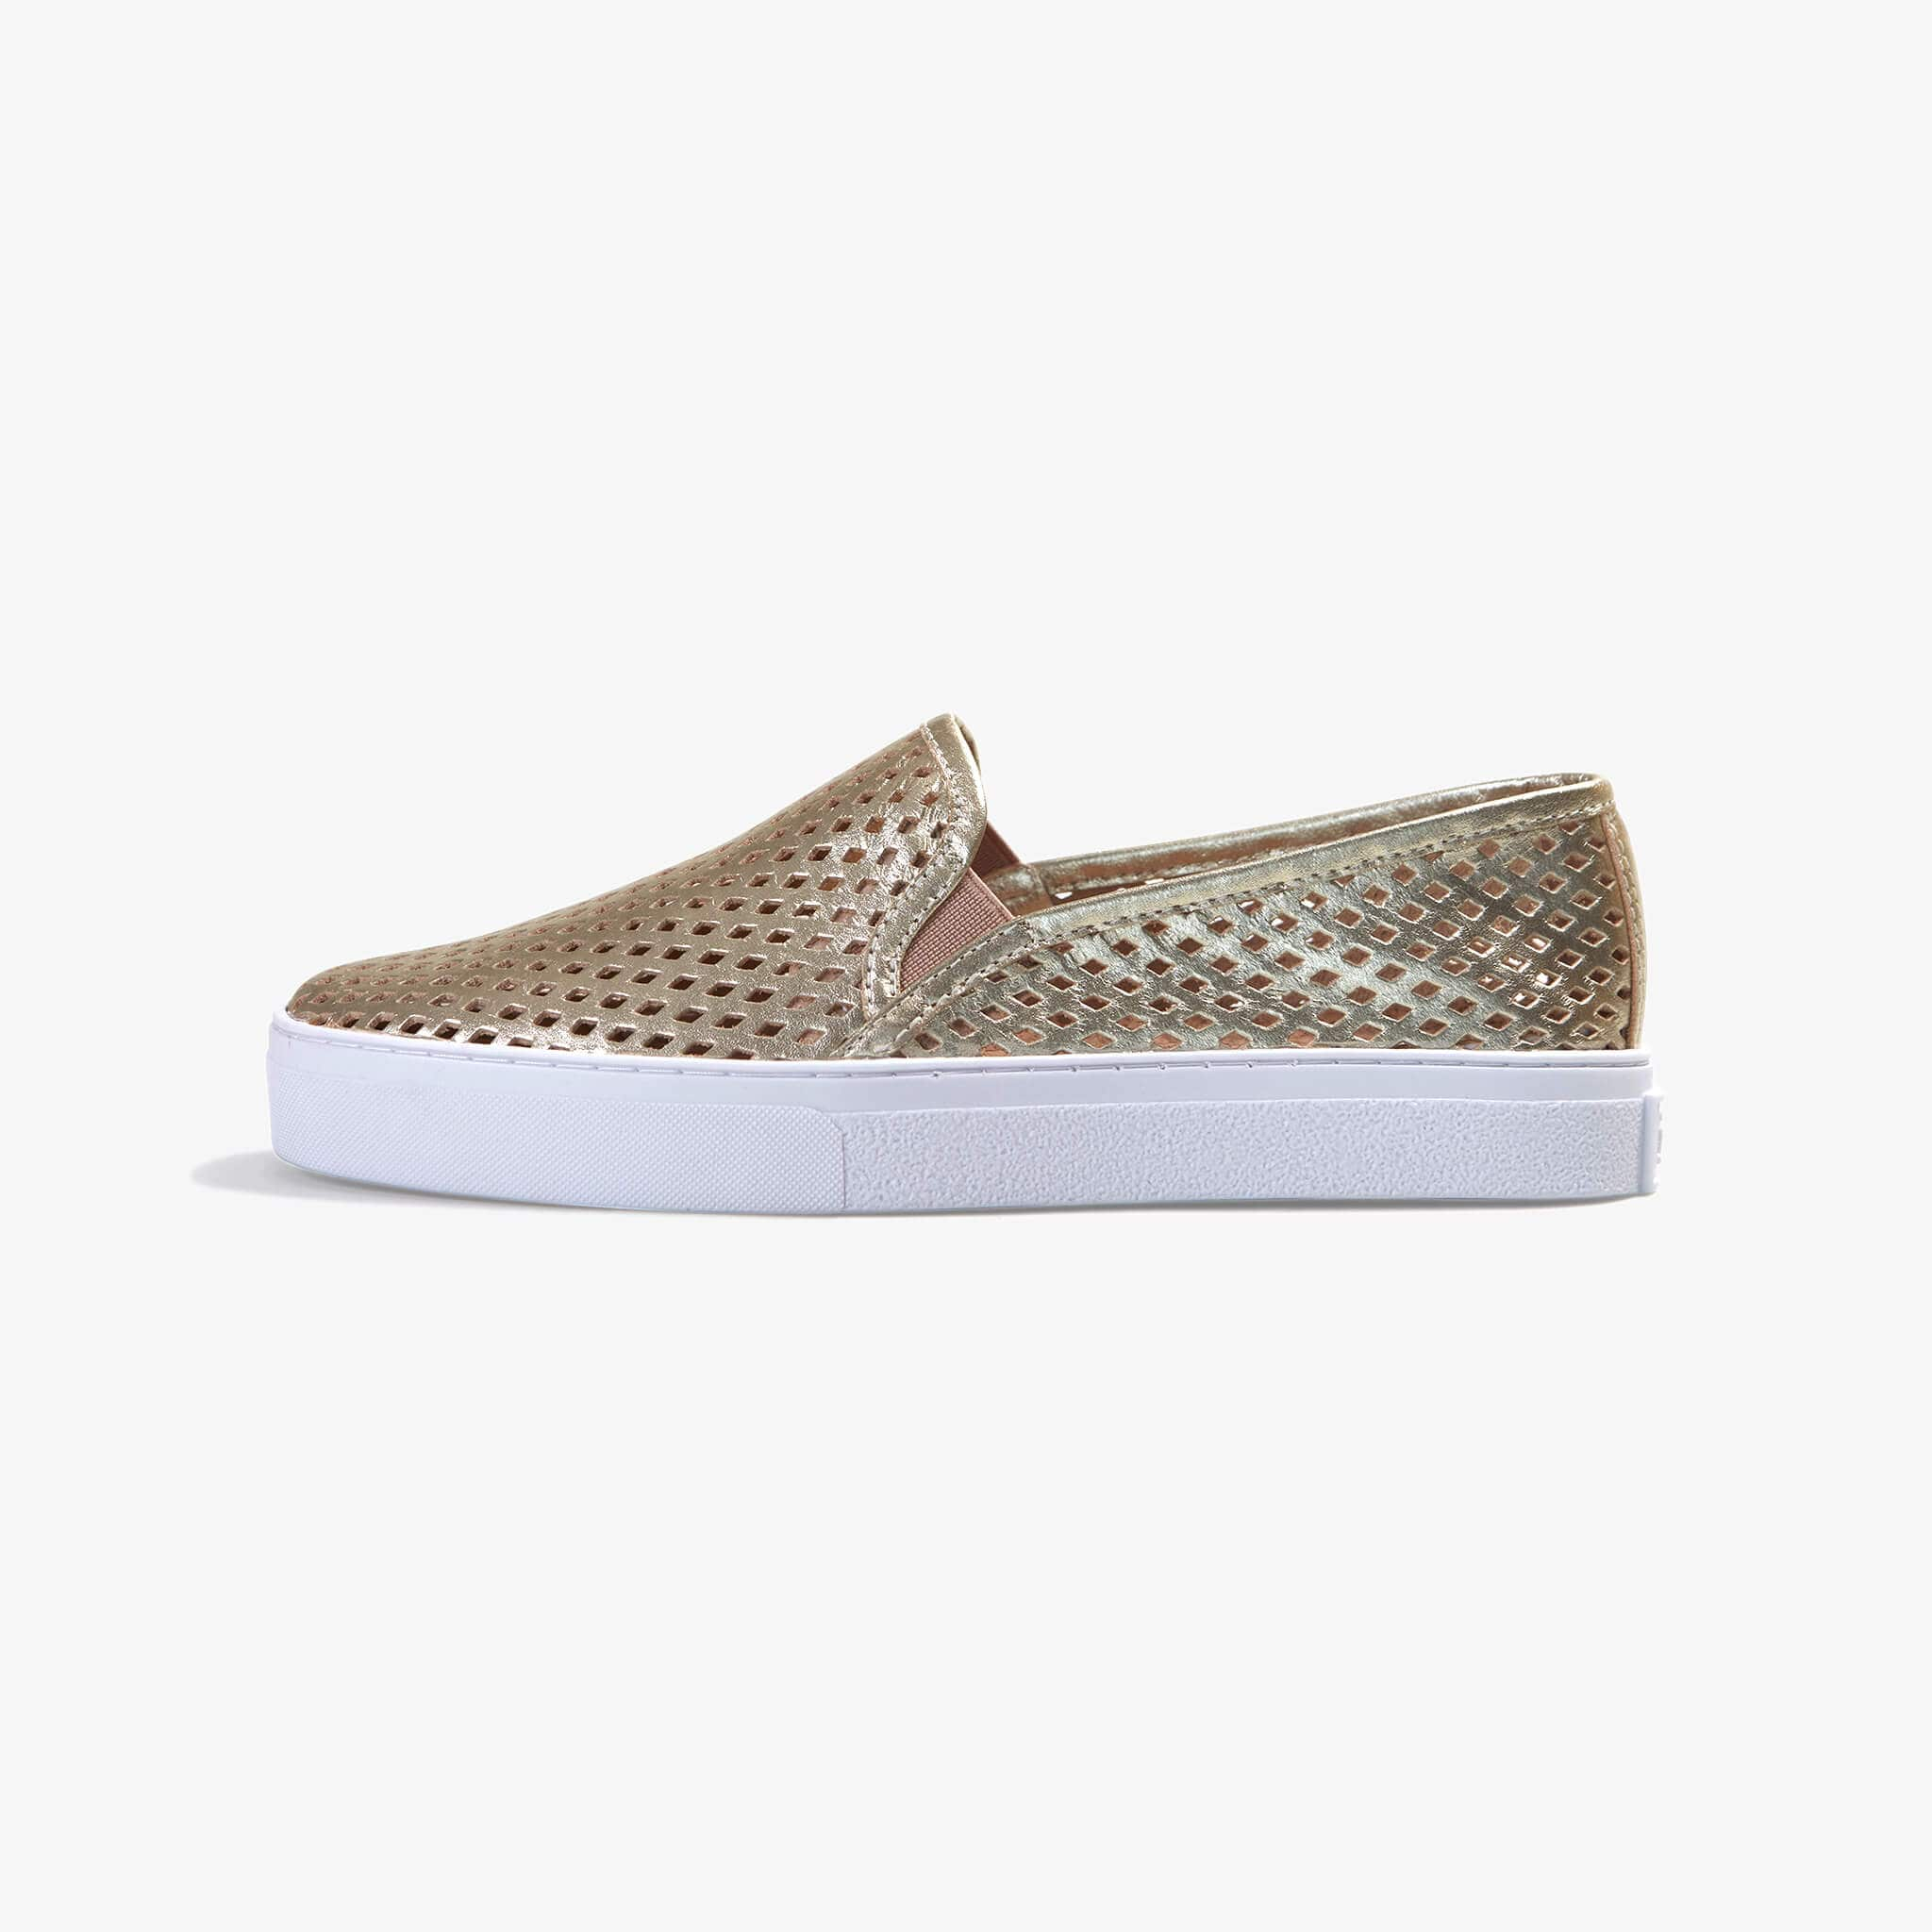 Jibs Classic Gold Slip On Sneaker-Shoe Side